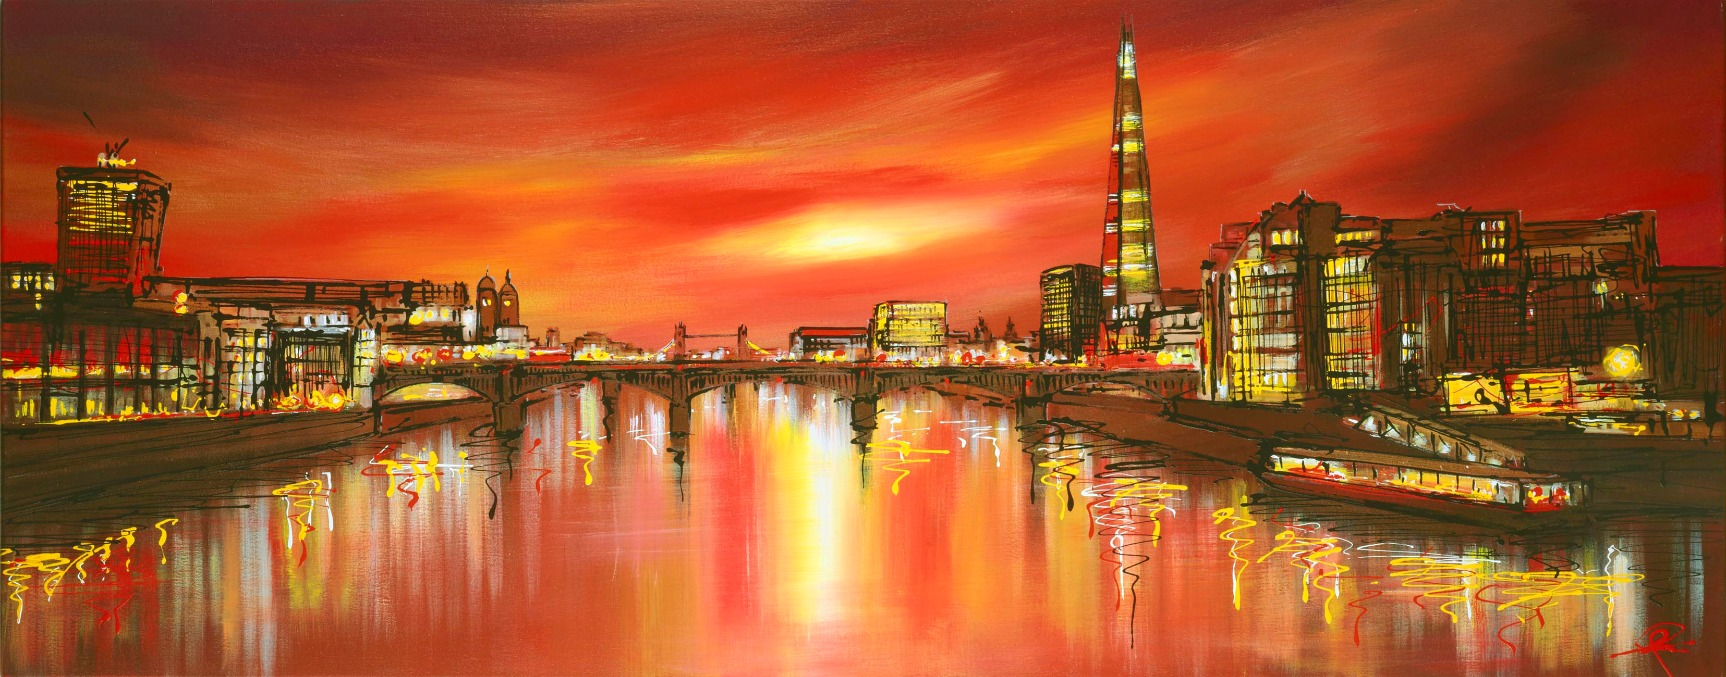 Towering Shard by Paul Kenton, Landscape | London | Abstract